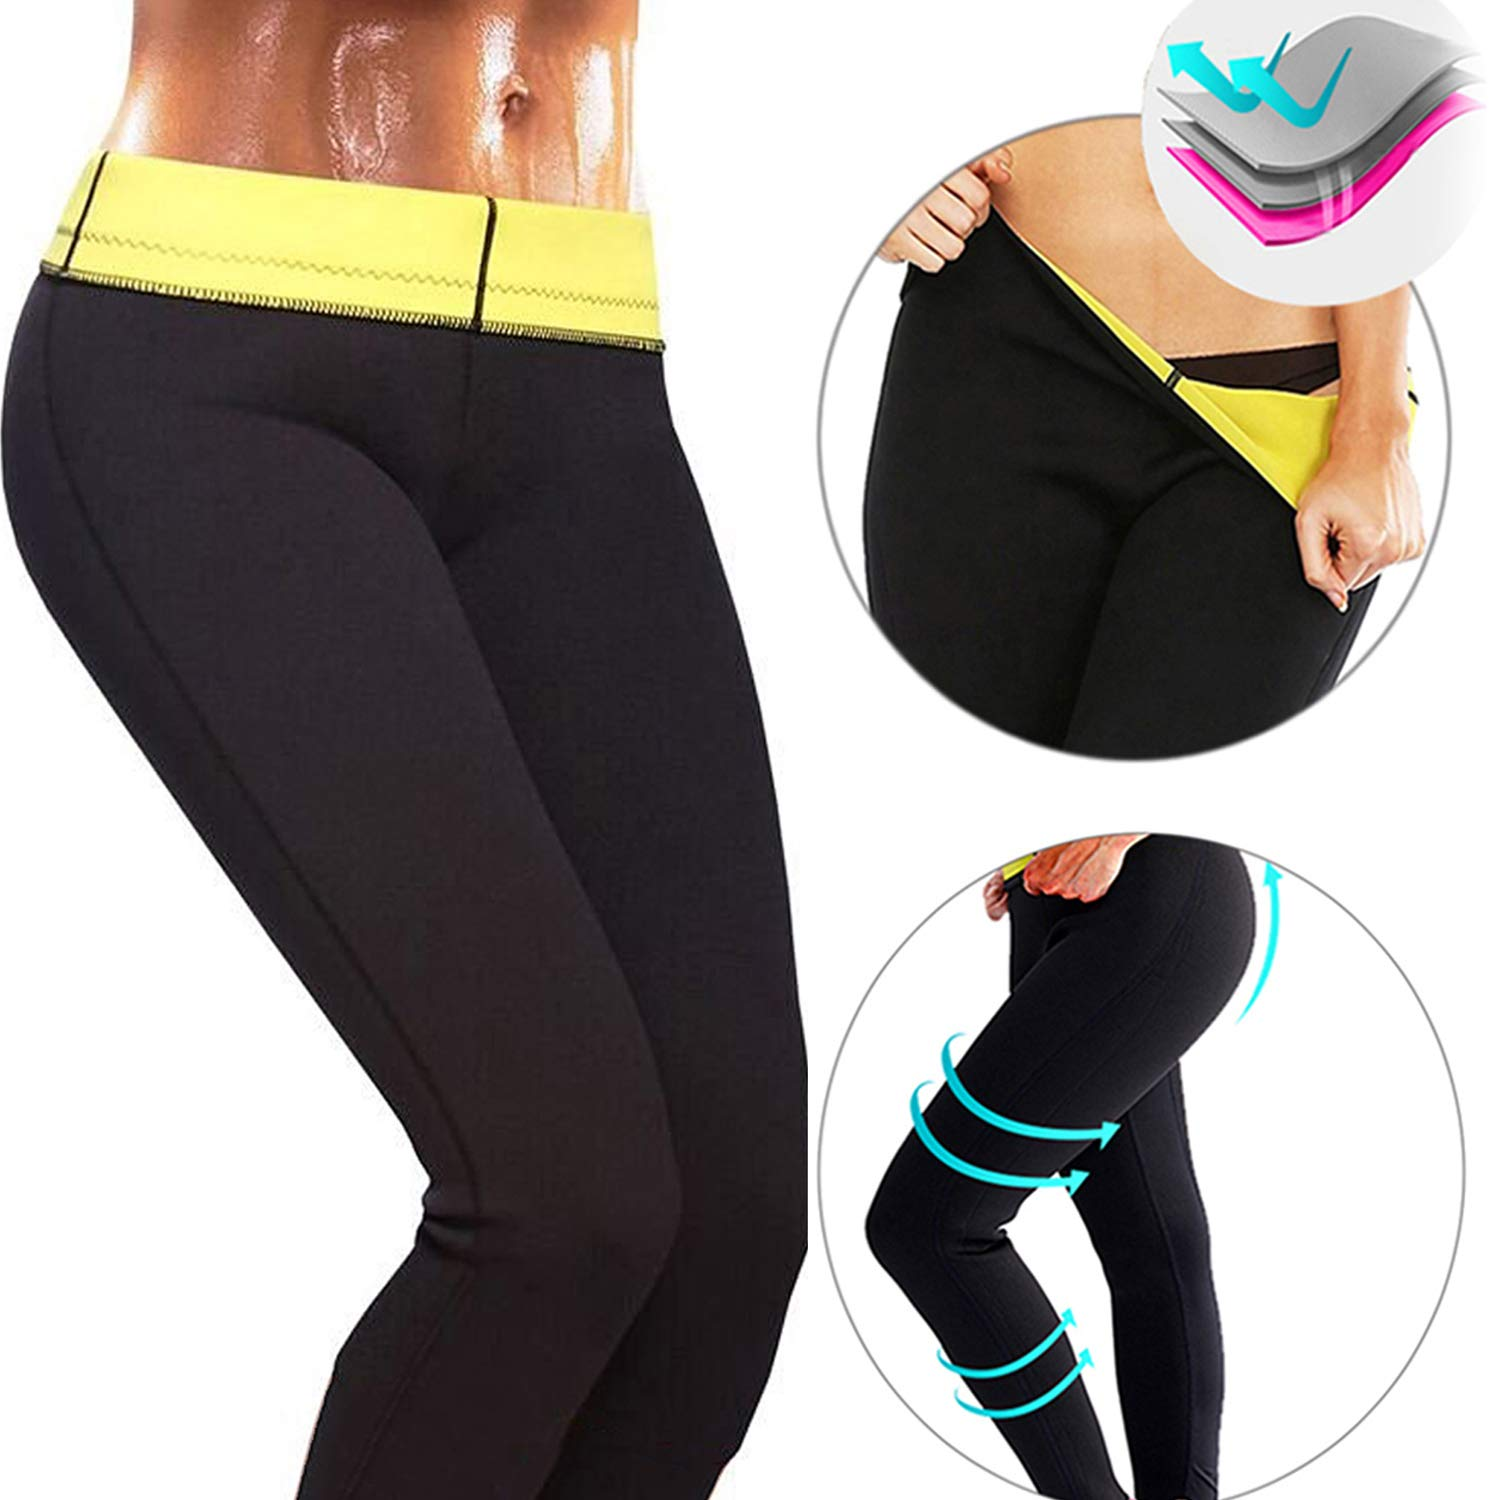 CROSS1946 Women's Slimming Long Pants leggings Yoga Hot Thermo Neoprene Sweat Sauna Body Shapers for Weight Loss